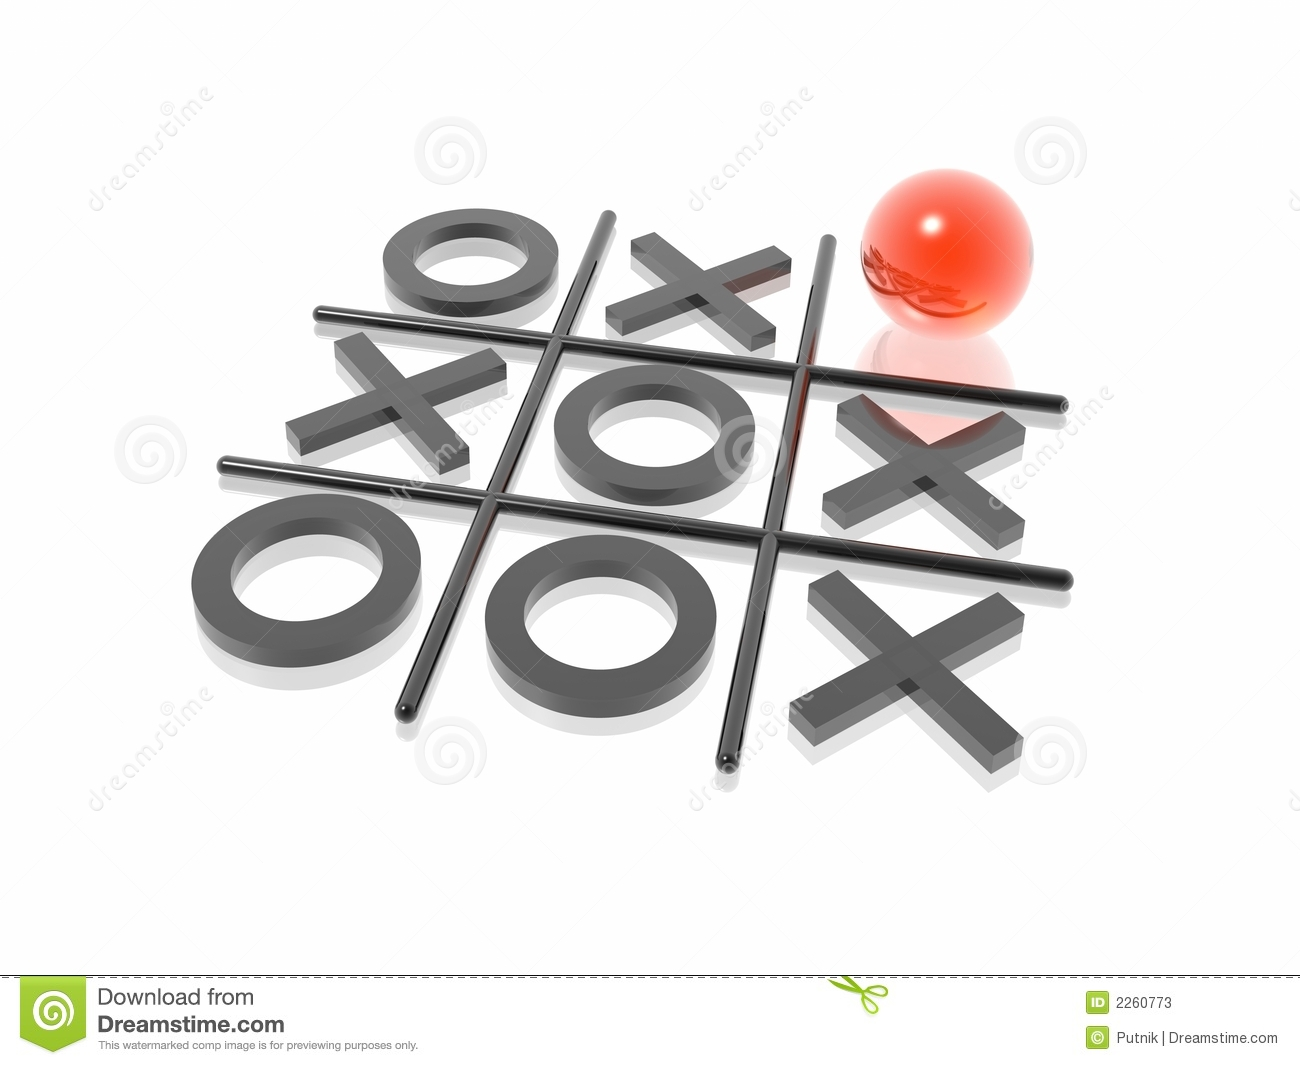 Noughts And Crosses Stock Photos - Image: 2260773